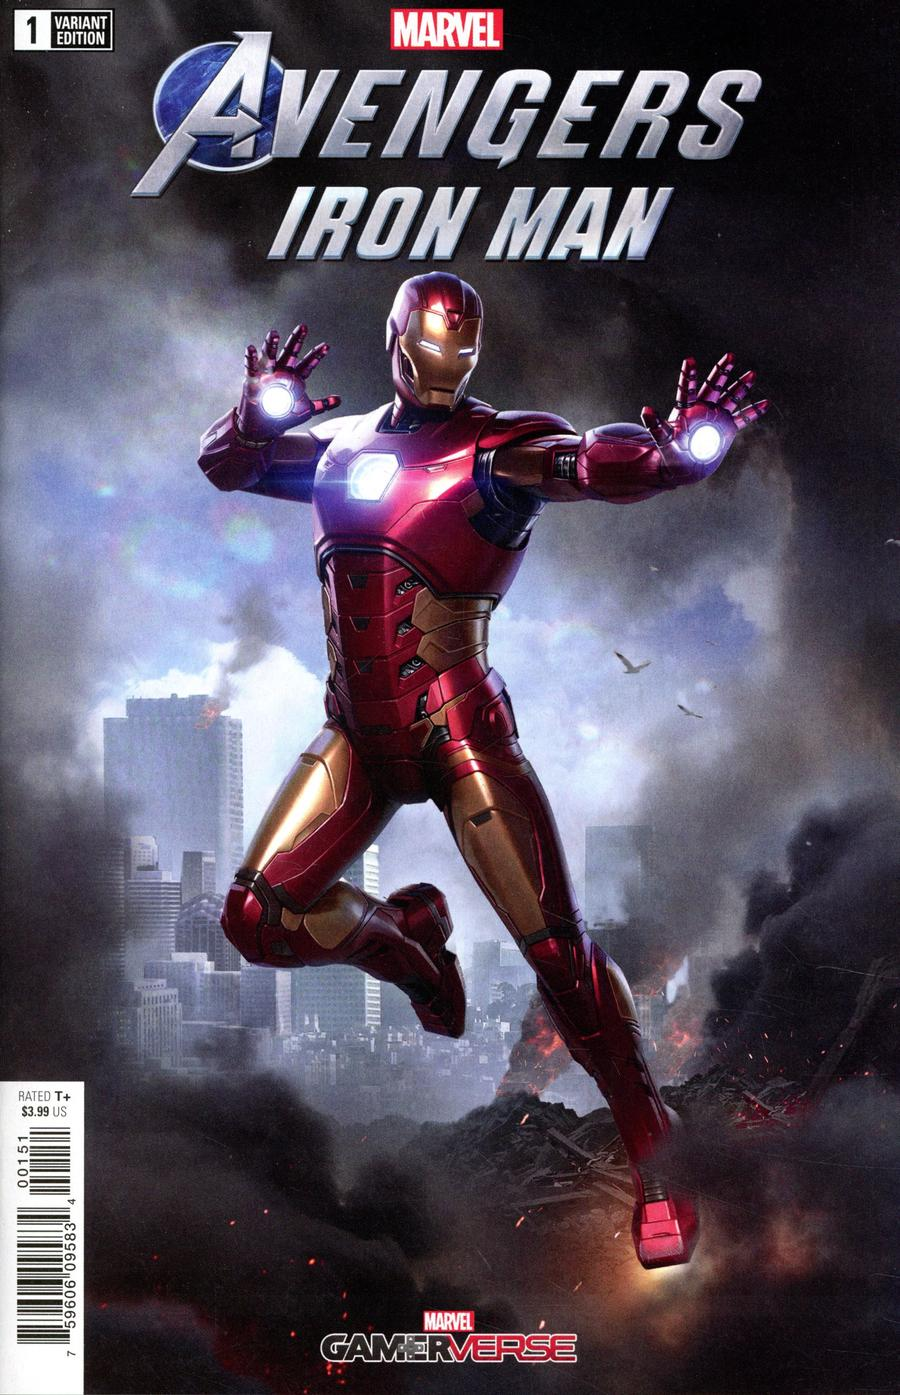 Marvels Avengers Iron Man #1 Cover C Variant Game Cover